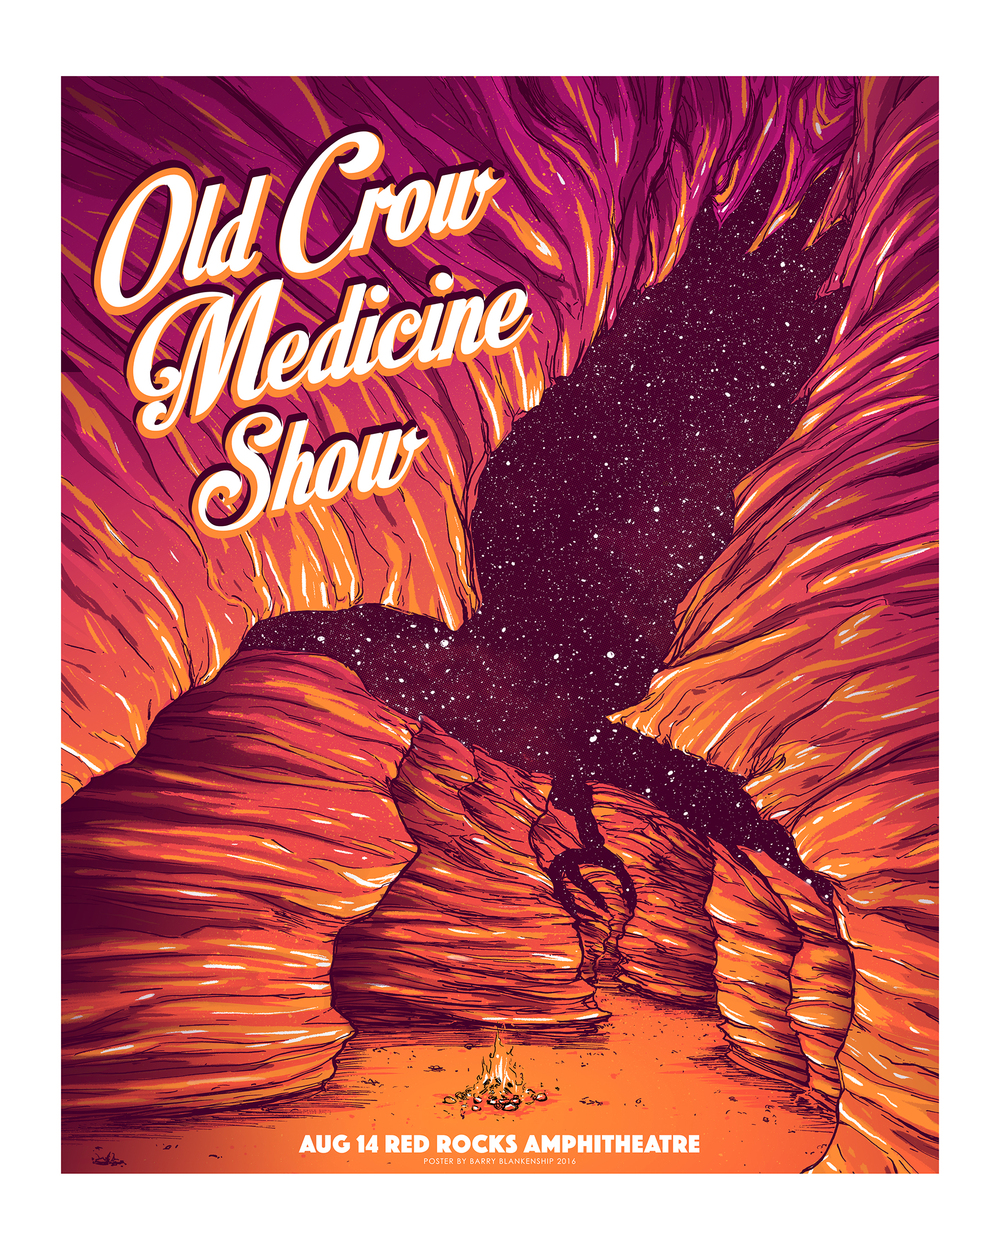 old_crow_red_rocks_aug_14.jpg